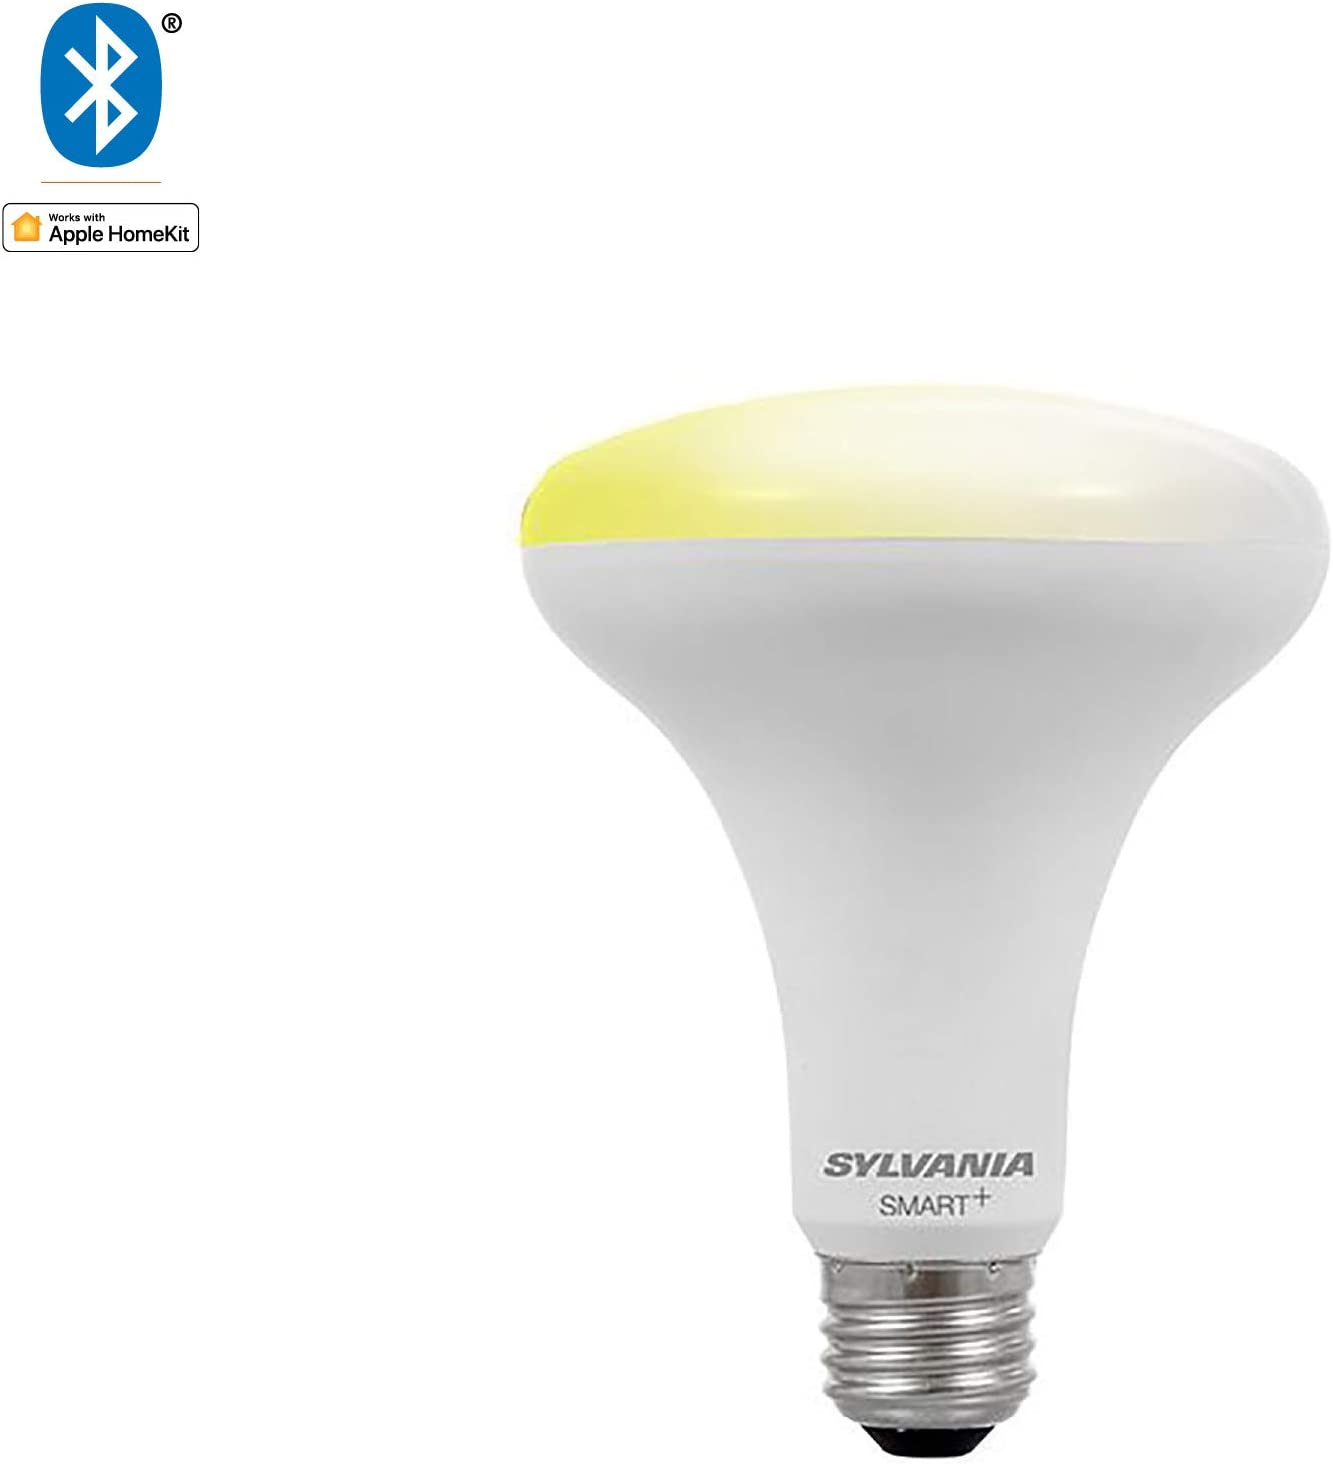 SYLVANIA General Lighting 74987 Smart+ BR30 LED Bulb, Works with Apple HomeKit and Siri Voice Control, 1 Pack, Soft White Dimmable